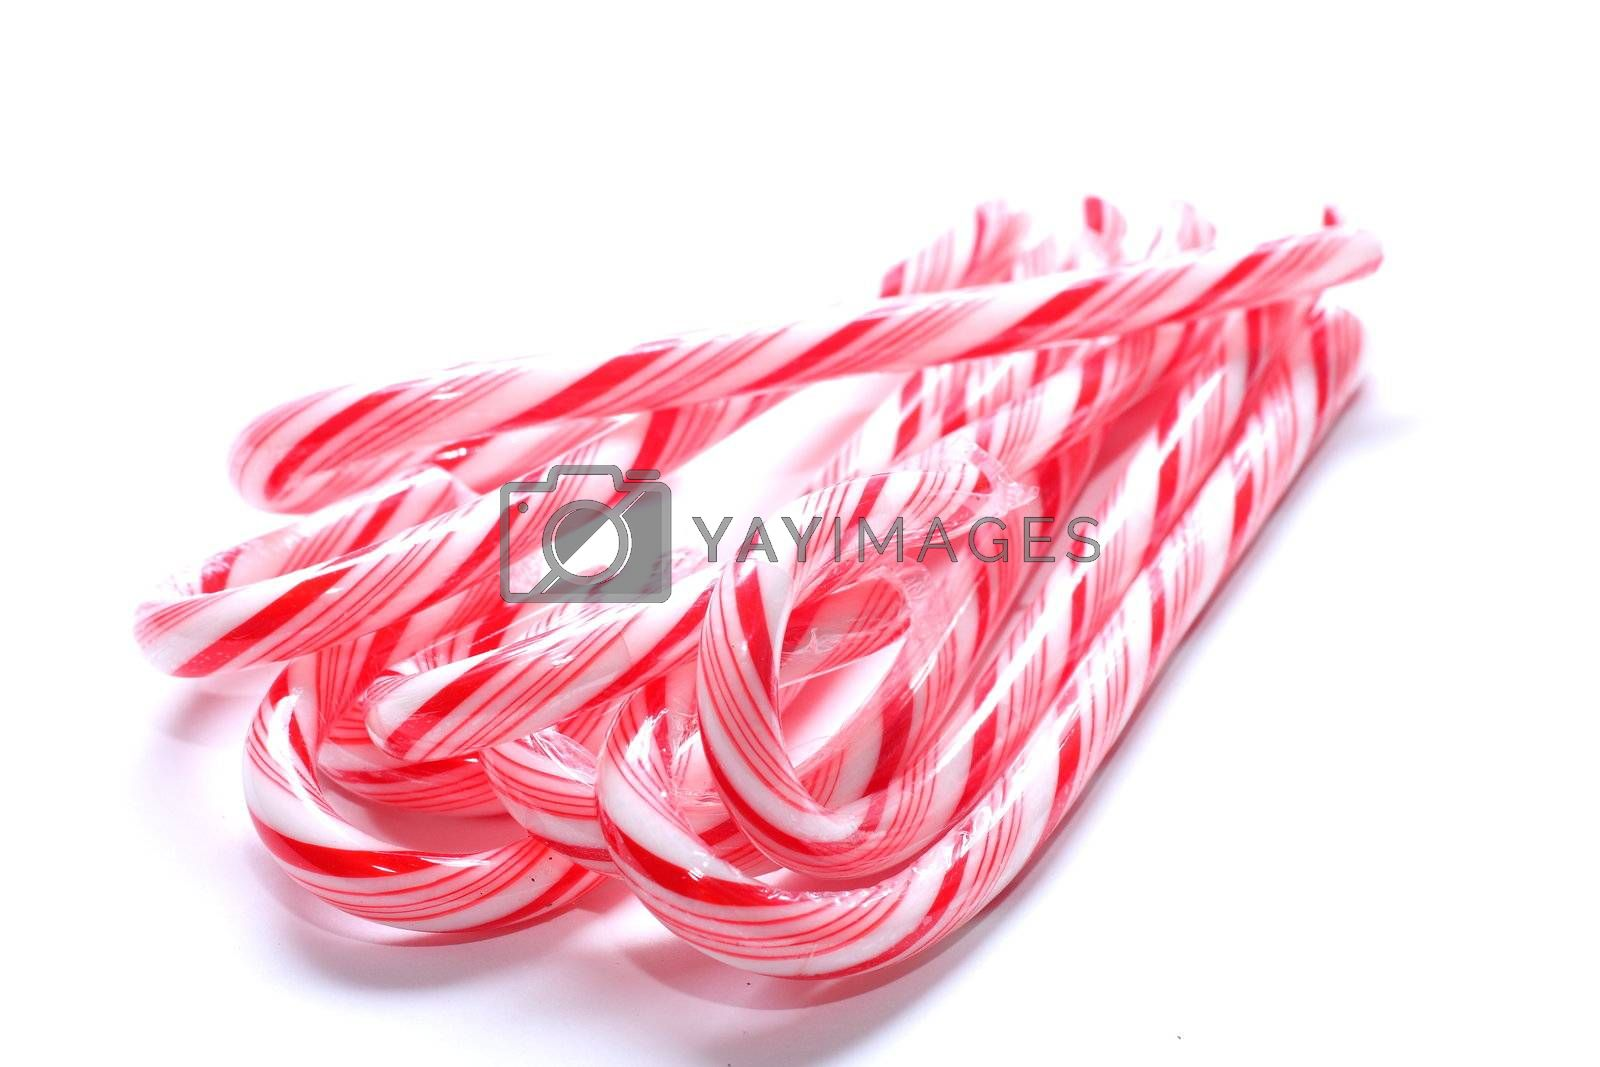 isolated shot of candy canes in a bundle on white background